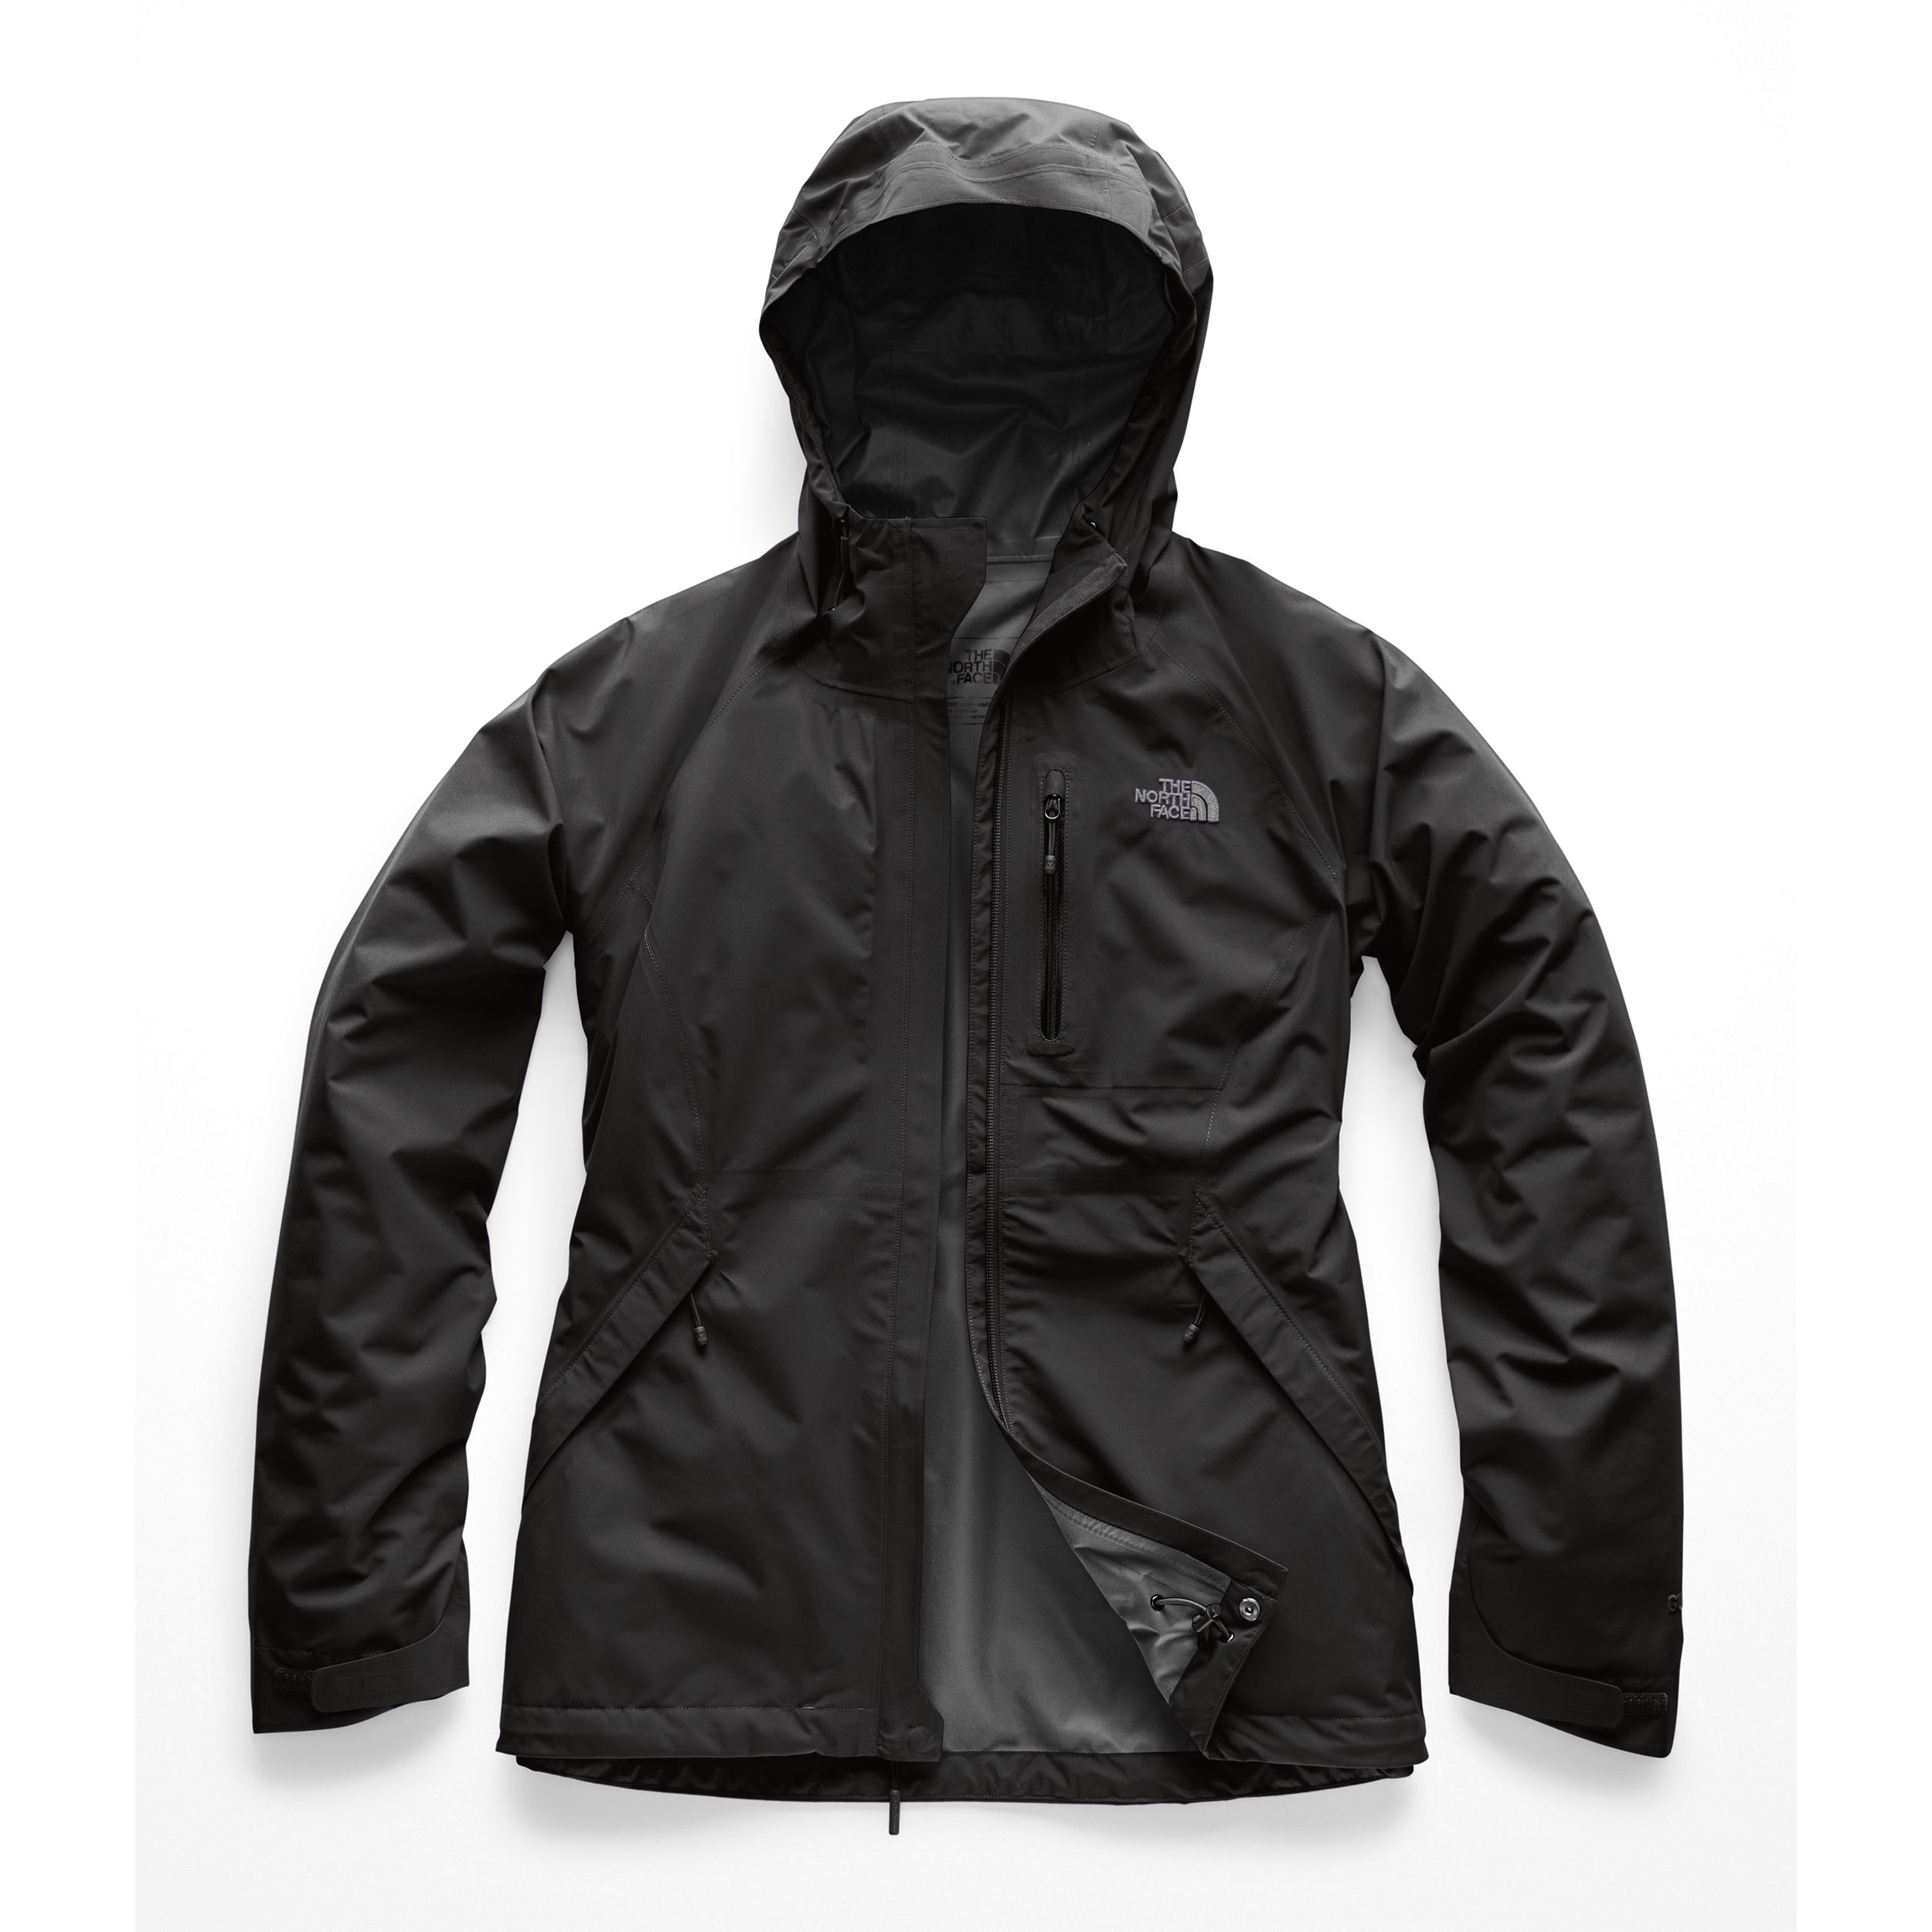 Dryzzle Jacket - Women's